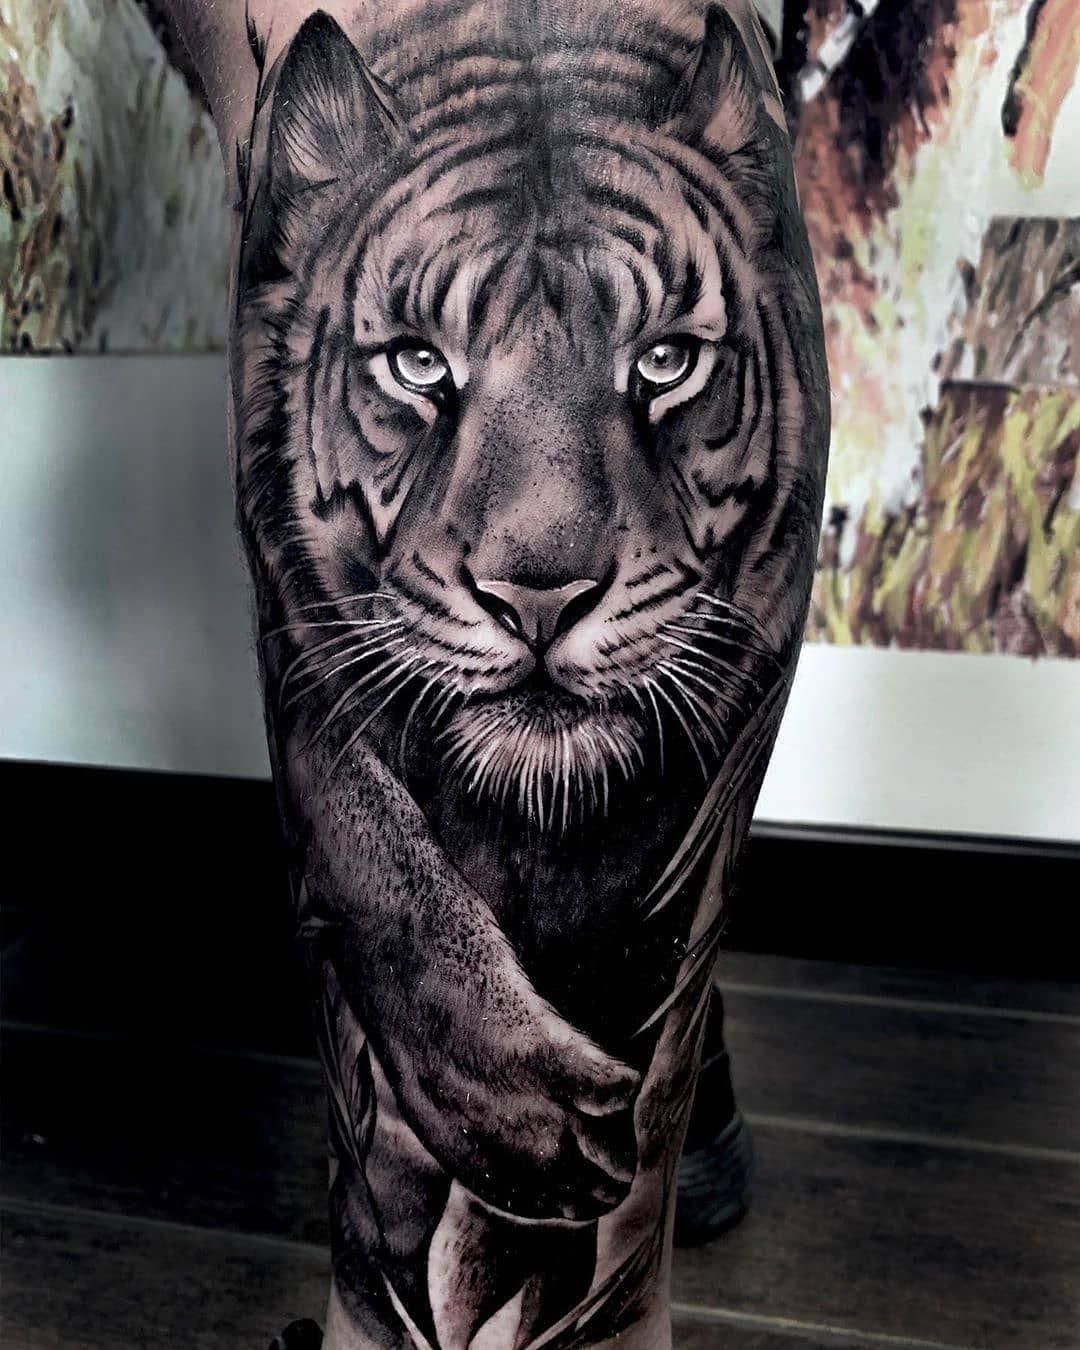 Reposted from @skingiants 🐅 🙏🏻⚡👏 Tiger Artist: @paloma.salazar.tattoo Country: ES ——————————————————————— ⚜️FOLLOW⚜️ @skingiants for daily tattoos! Sharing only the best tattoos Artists on instagram —————————————————————— #realismtattoo #blackandgreytattoo #skingiants #tattooist #tattoolove #tattooed #tattoosleeve #tattoodesign #tattoolover #tattooworld #tattoosofinstagram #tattoolovers #tattooleg #inked #tat #tats - #regrann